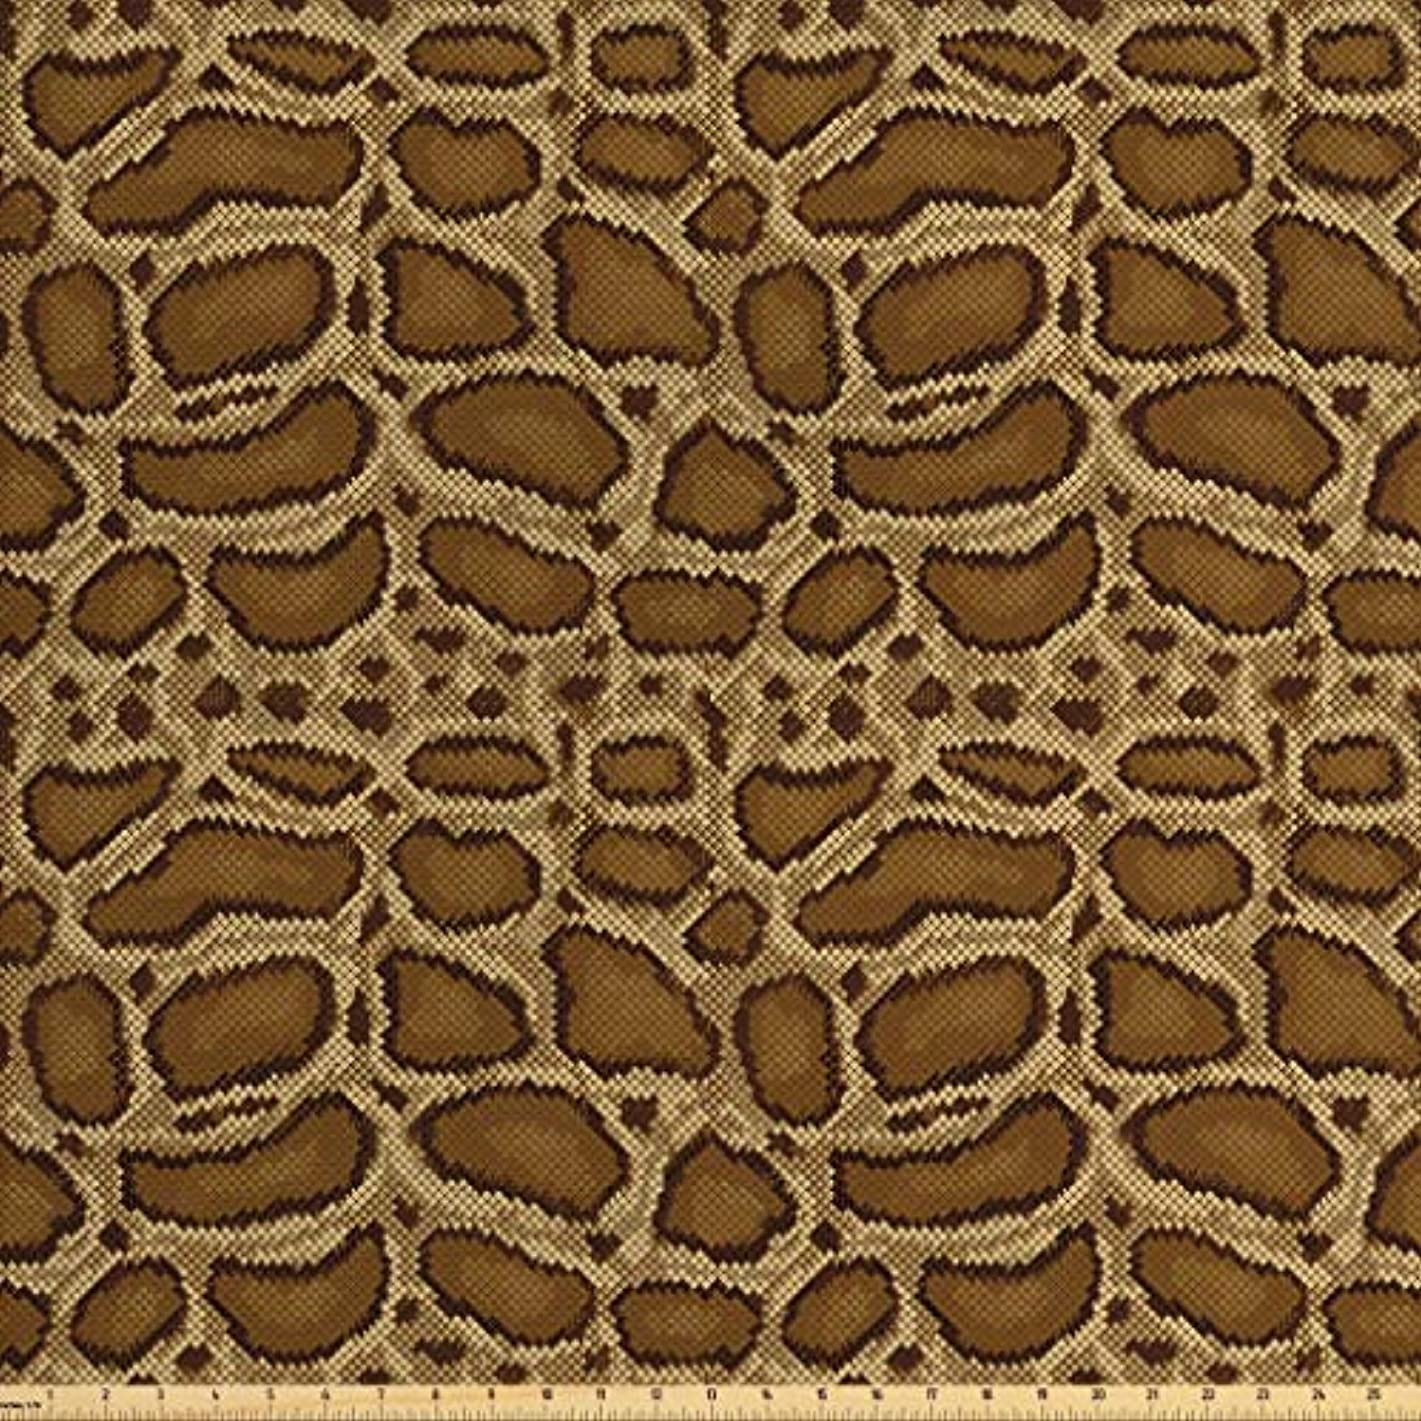 Lunarable Reptile Fabric by The Yard, Python Snakeskin Pattern Geometrical Borders Composition Animal Hide Print, Decorative Fabric for Upholstery and Home Accents, 2 Yards, Caramel Pale Brown